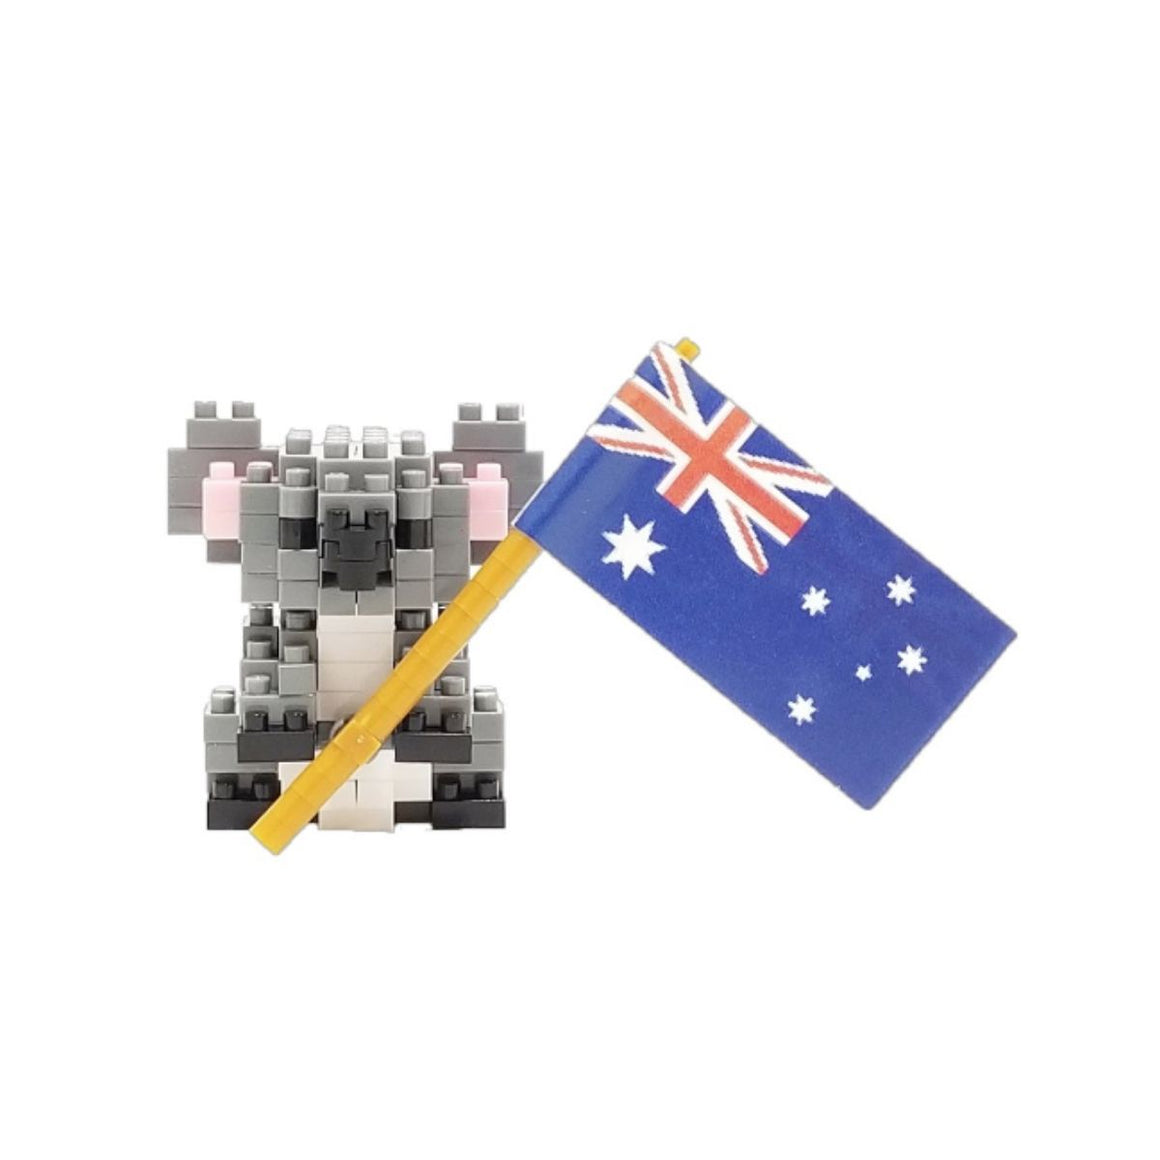 Micro-sized building blocks to replicate intricate detail of a Koala with the Australian flay featuring the colours grey, dark grey, light grey, black, red, white and blue